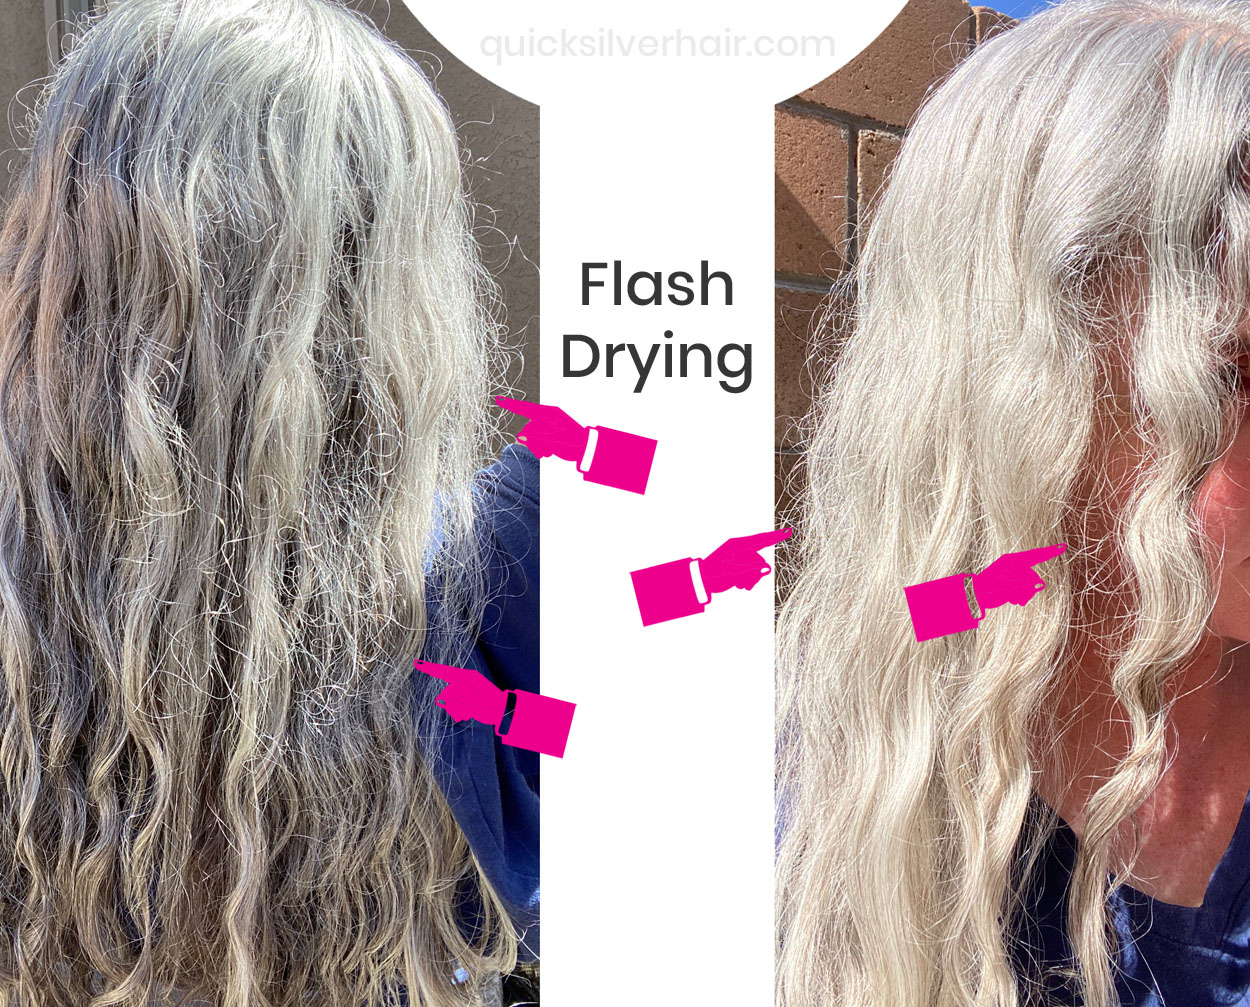 What Ingredients Should You Avoid or Not in Hair Products to prevent flash drying image